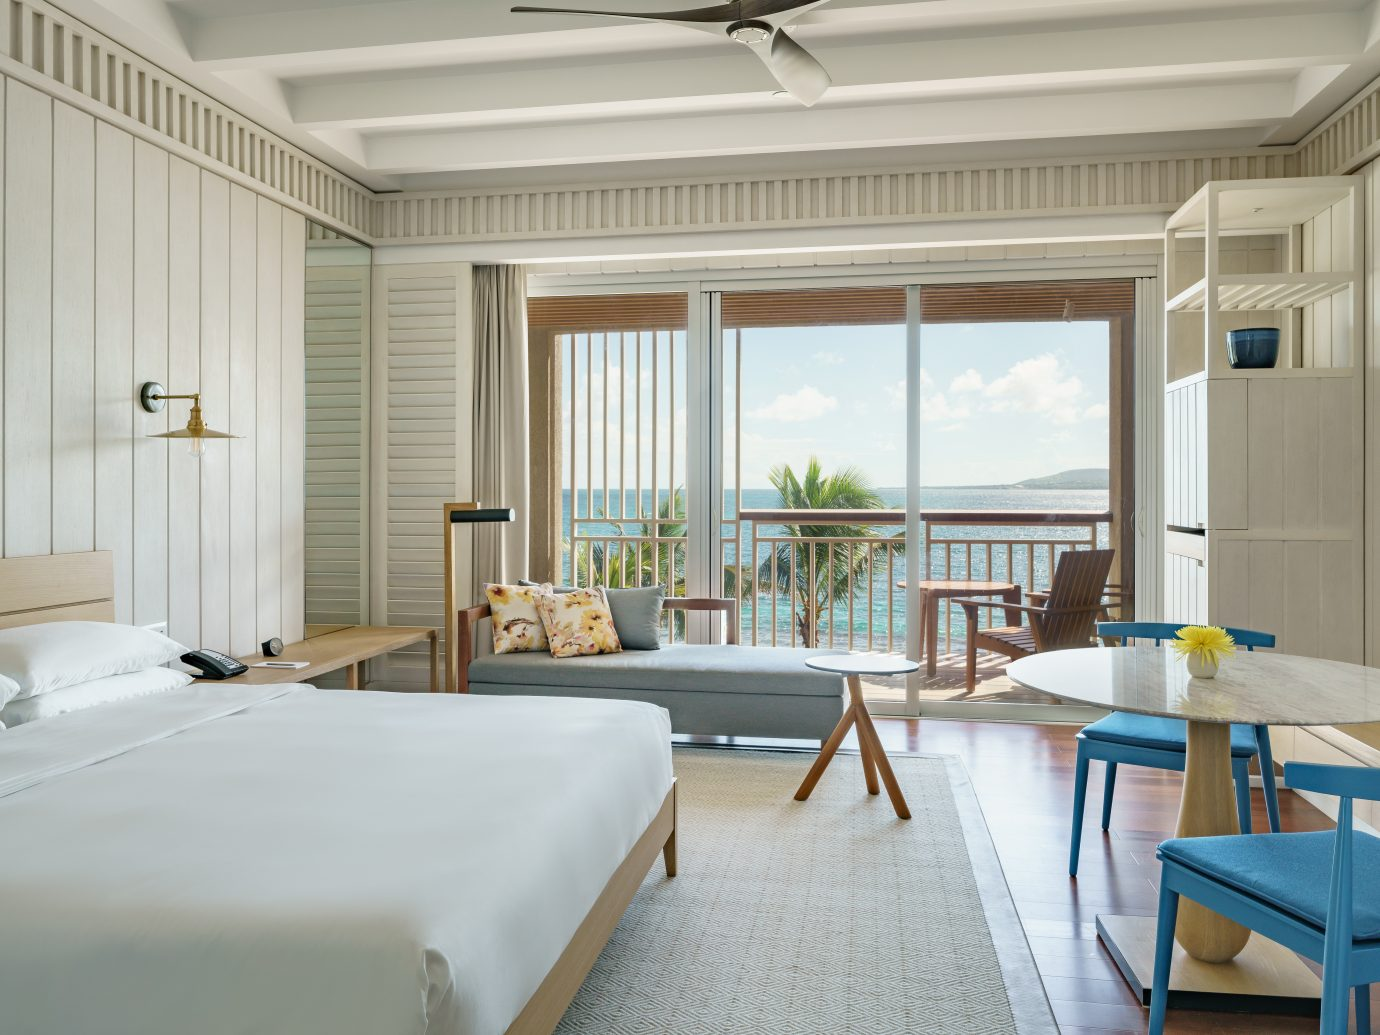 King Room at the Park Hyatt St. Kitts